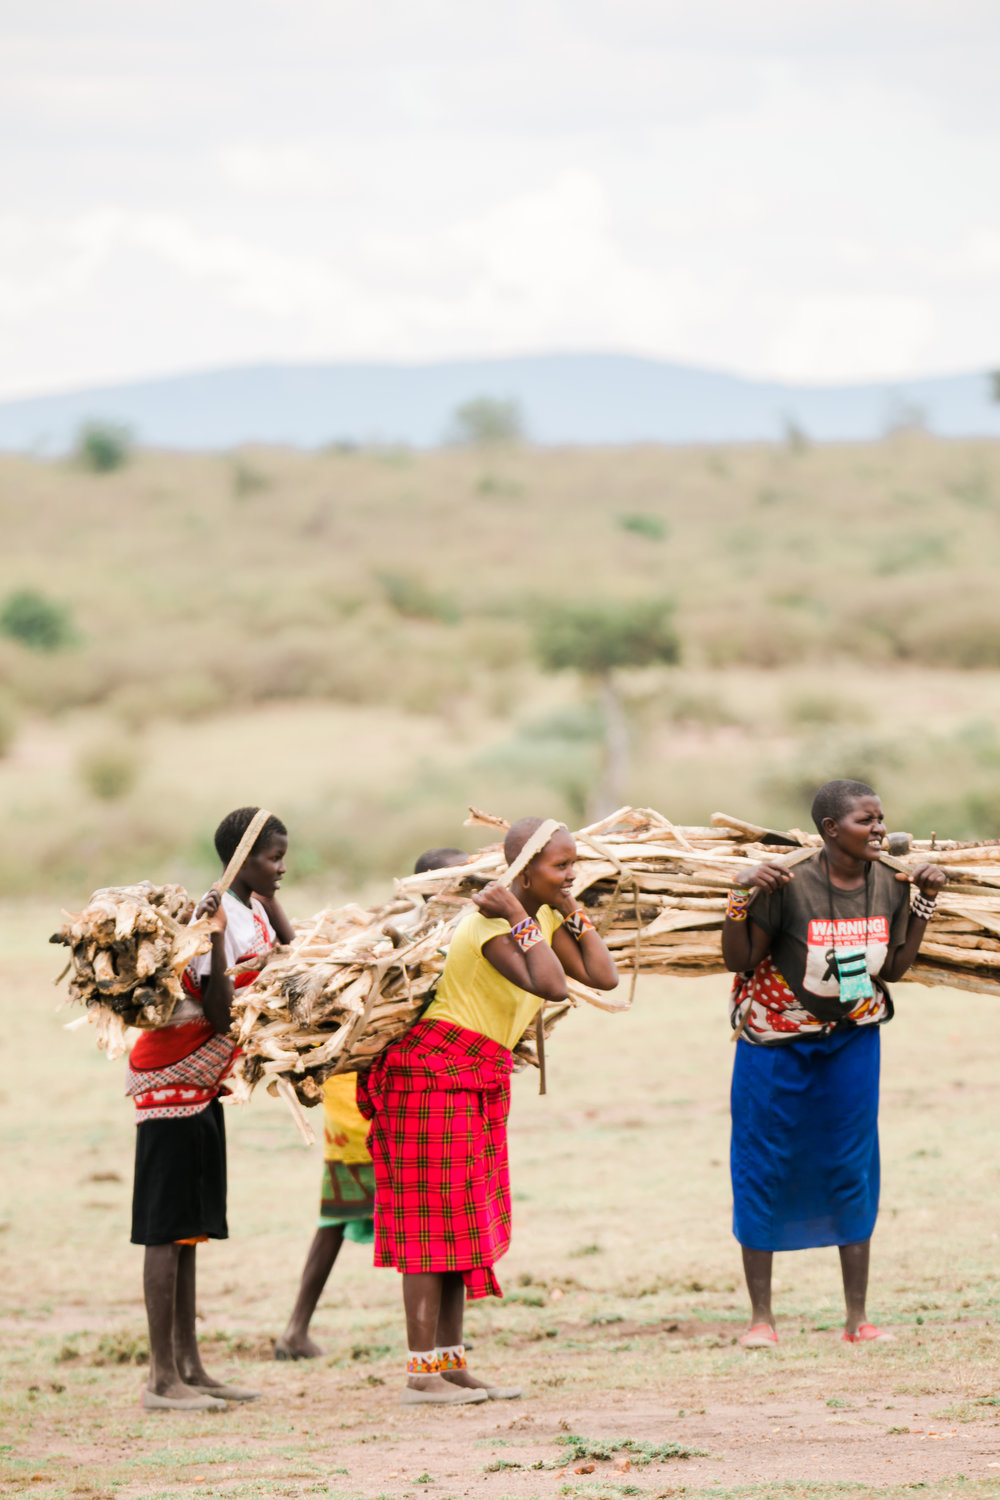 Maasai women carrying wood to local village Ph. Valorie Darling